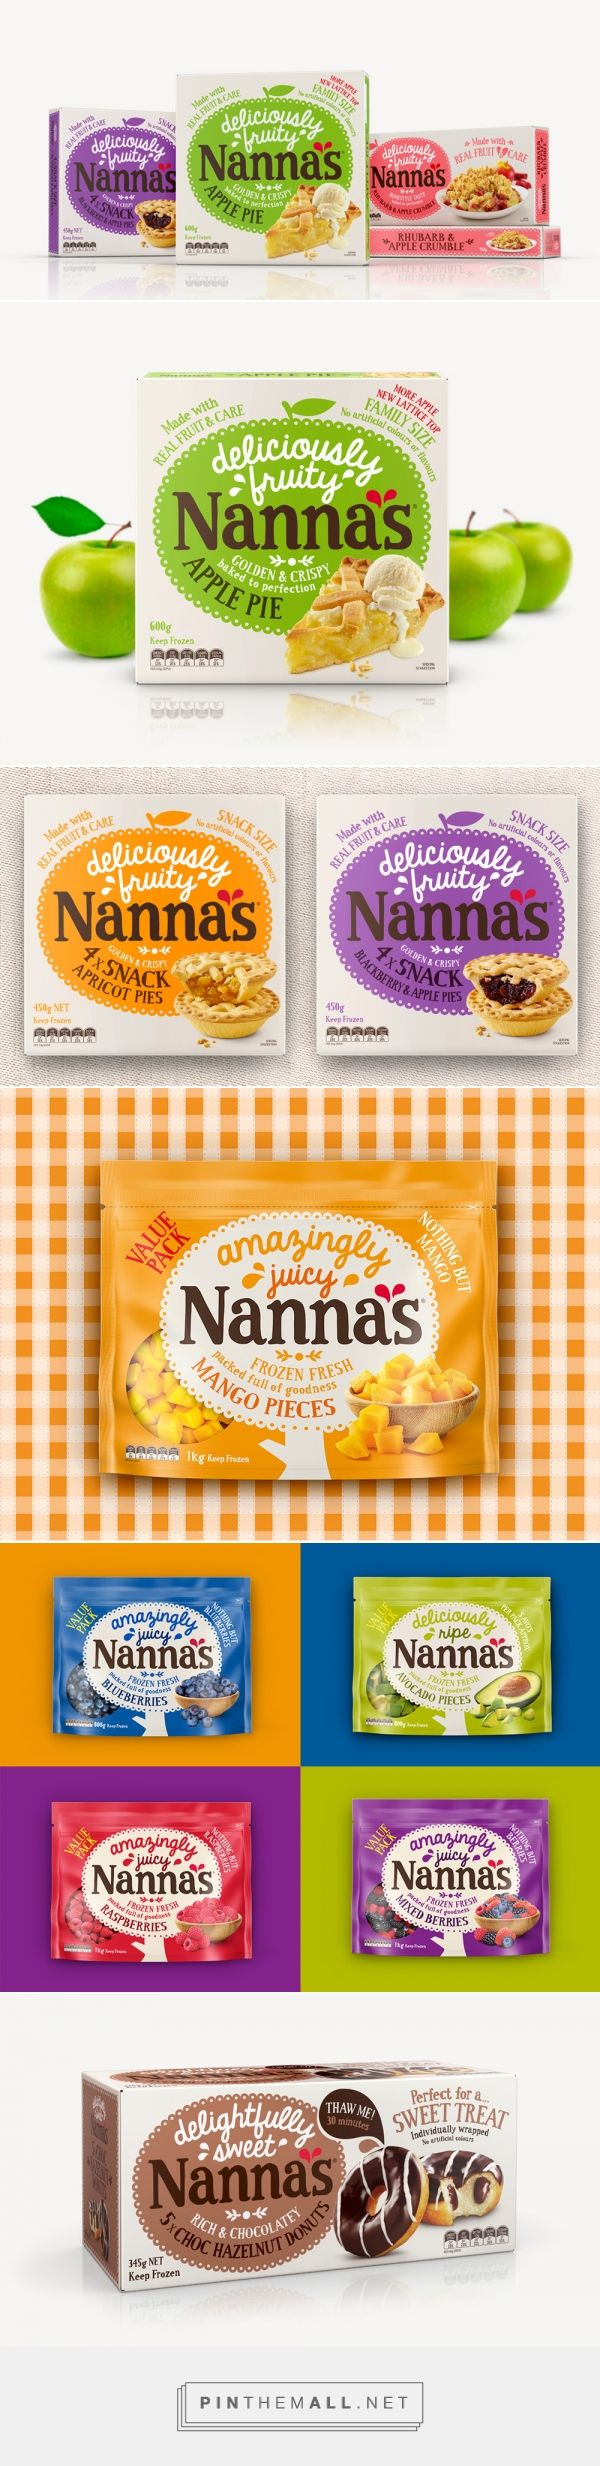 #nannas #package #packaging #design #colorful #type #typography